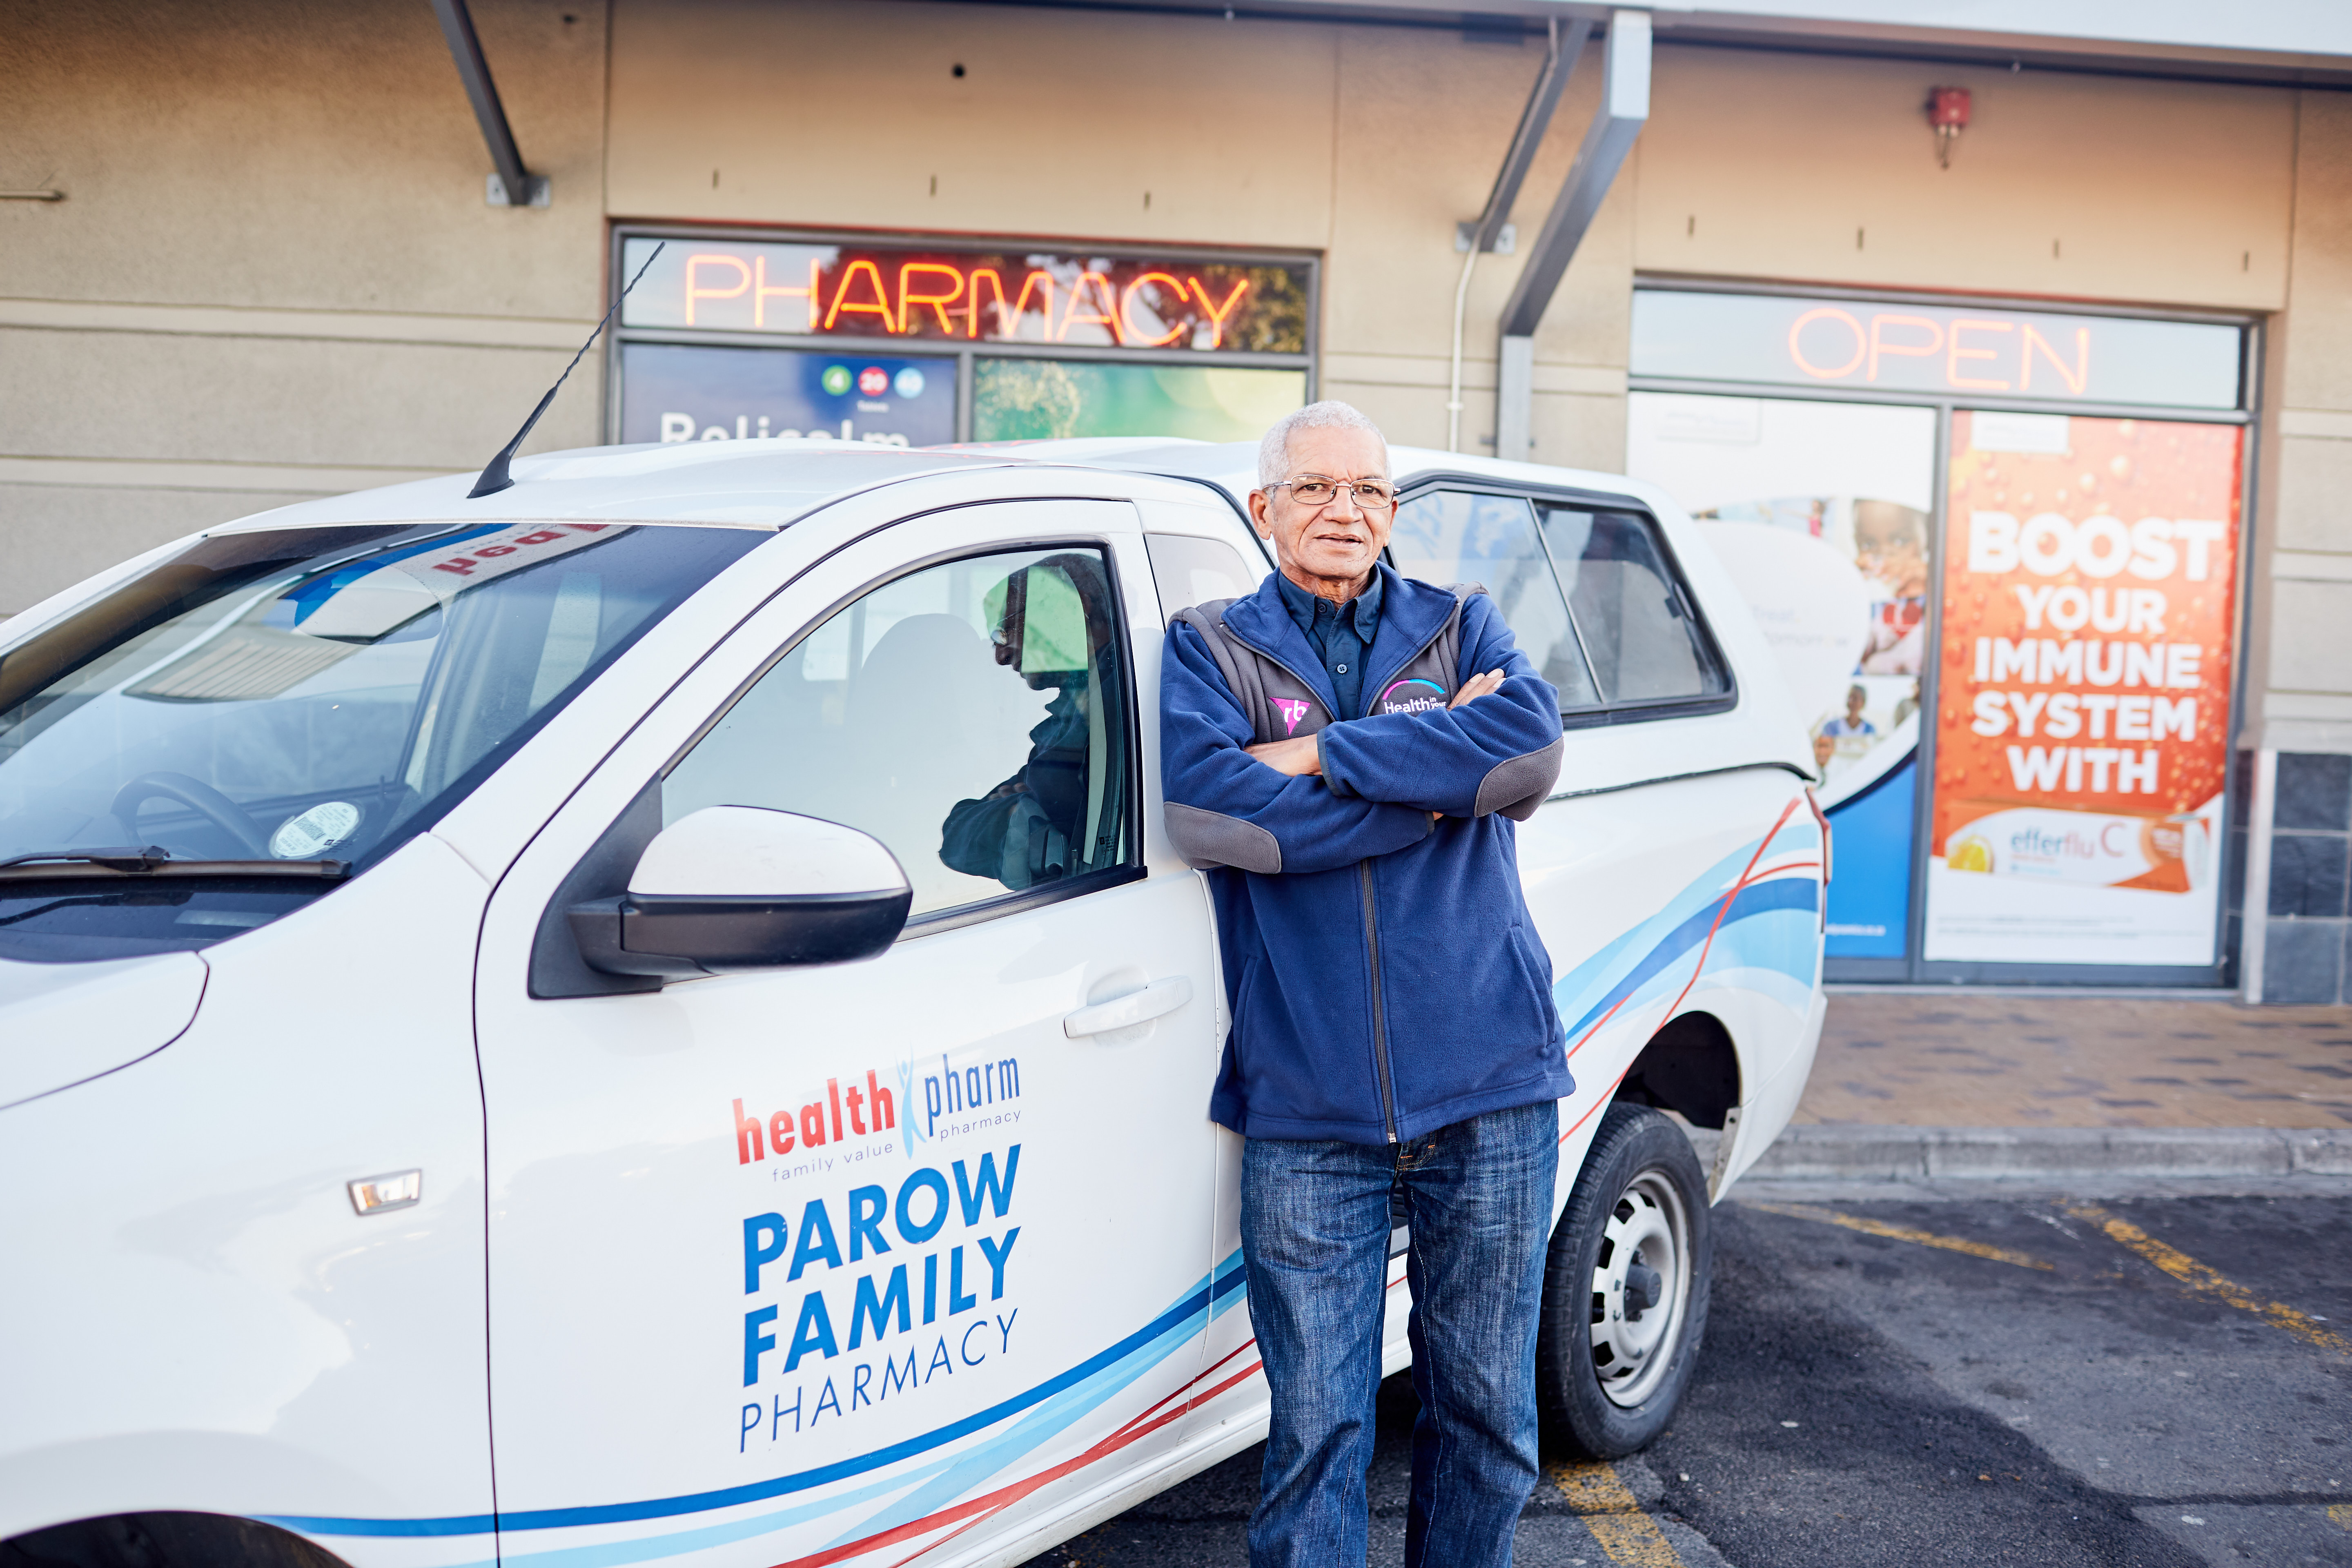 Parow Family Pharmacy – your number one health pharmacy